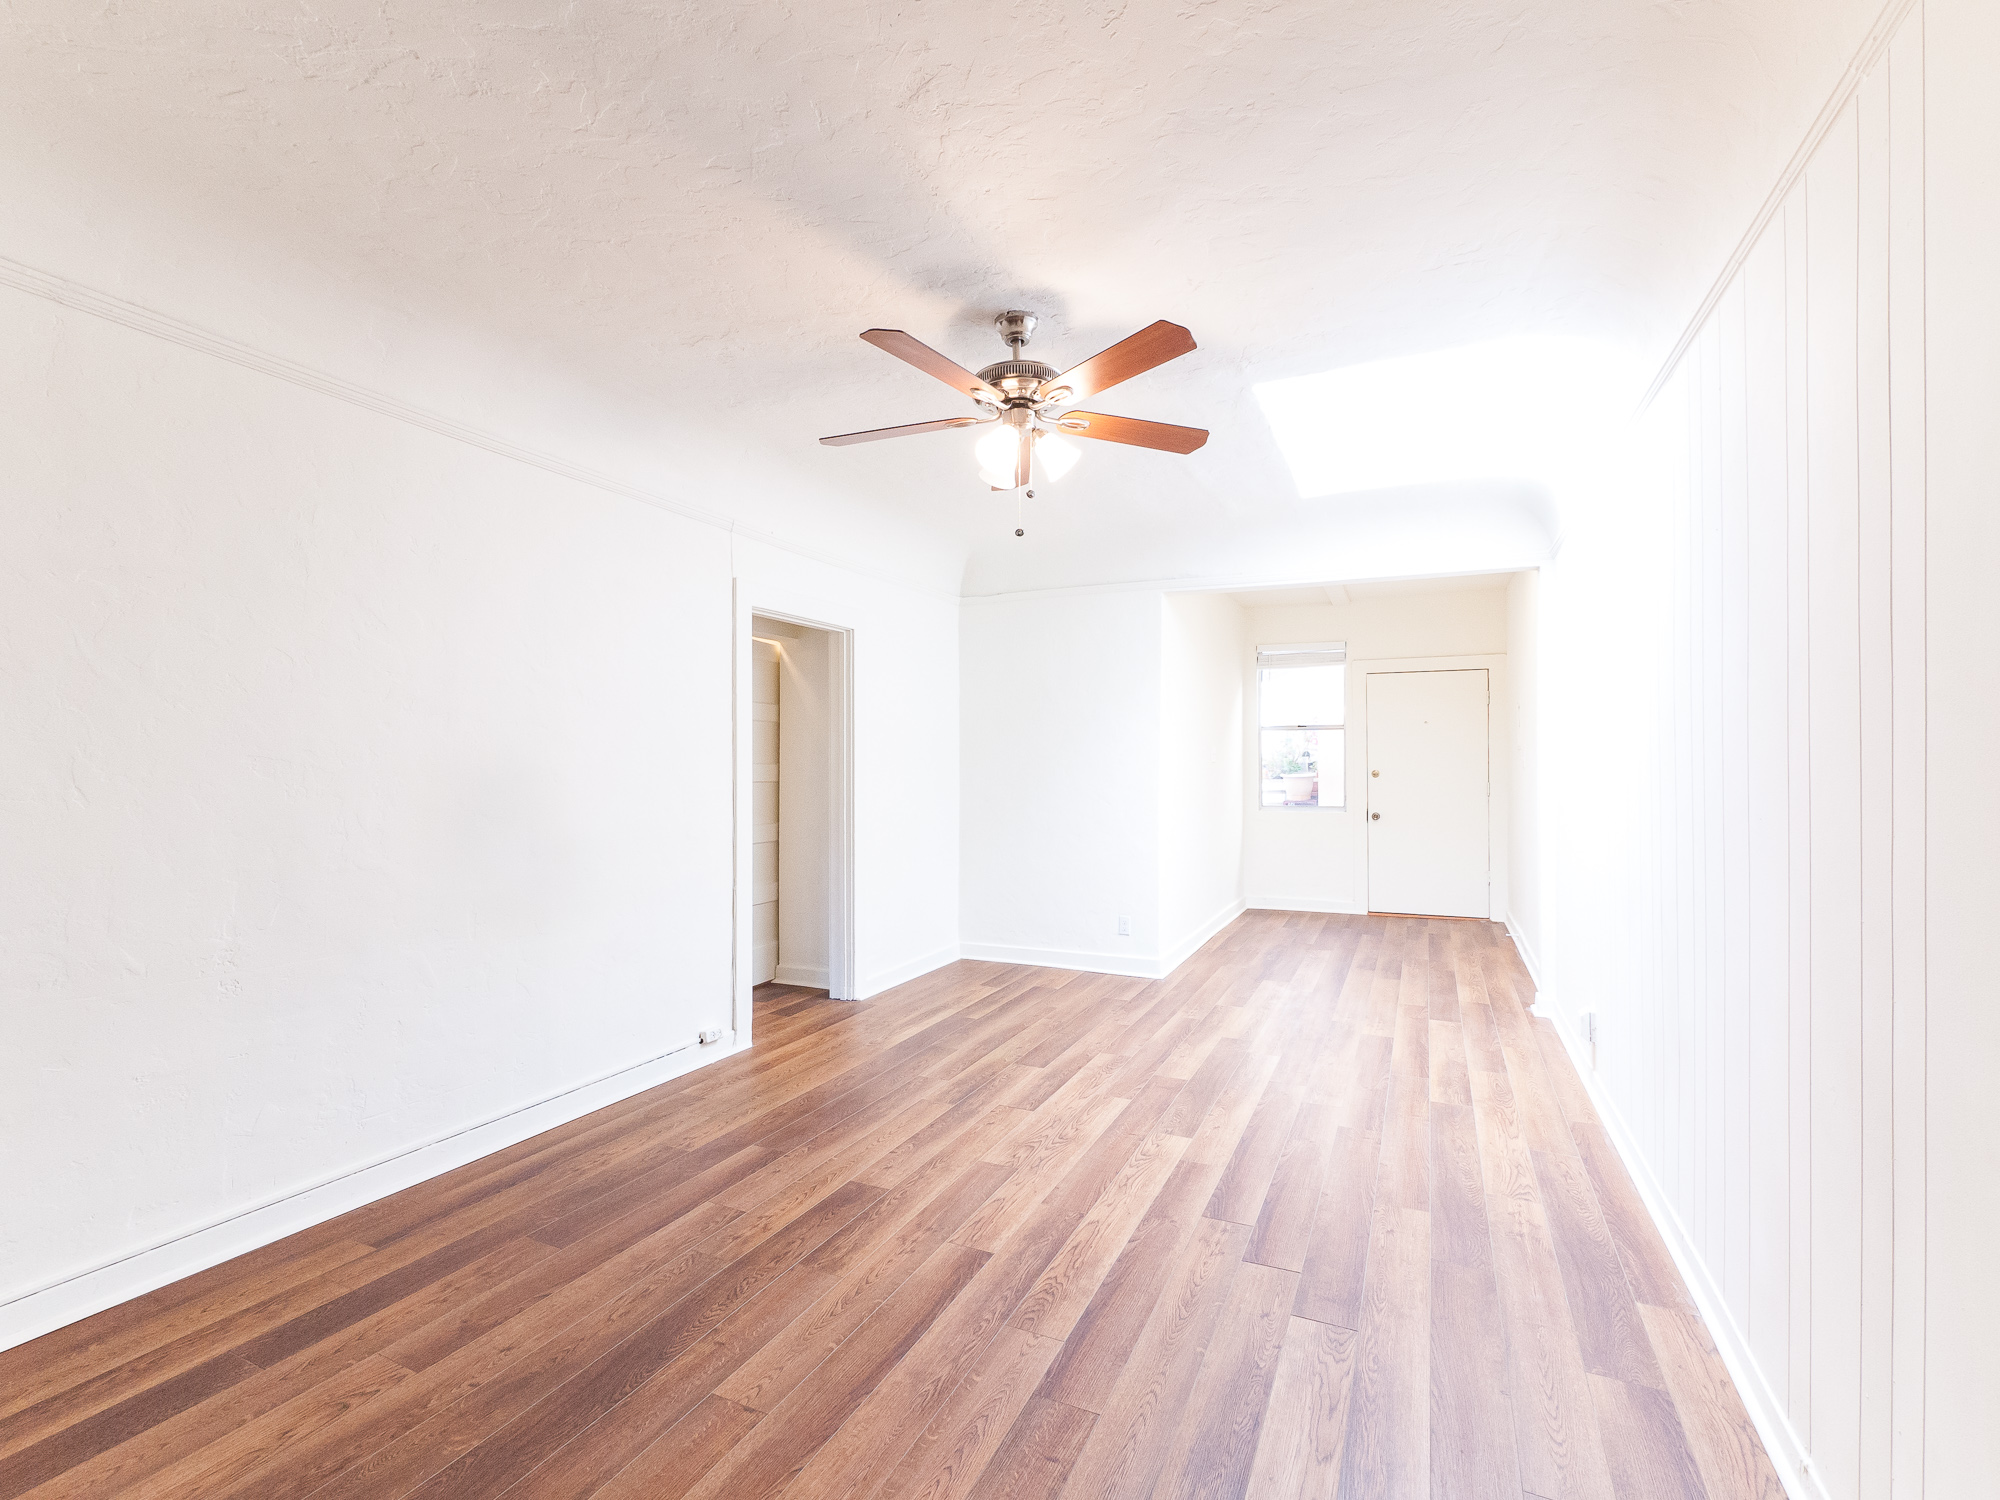 Newly Renovated 2 bedroom in Chinatown w/ HUGE walk-in closet | Near DTLA and Echo Park